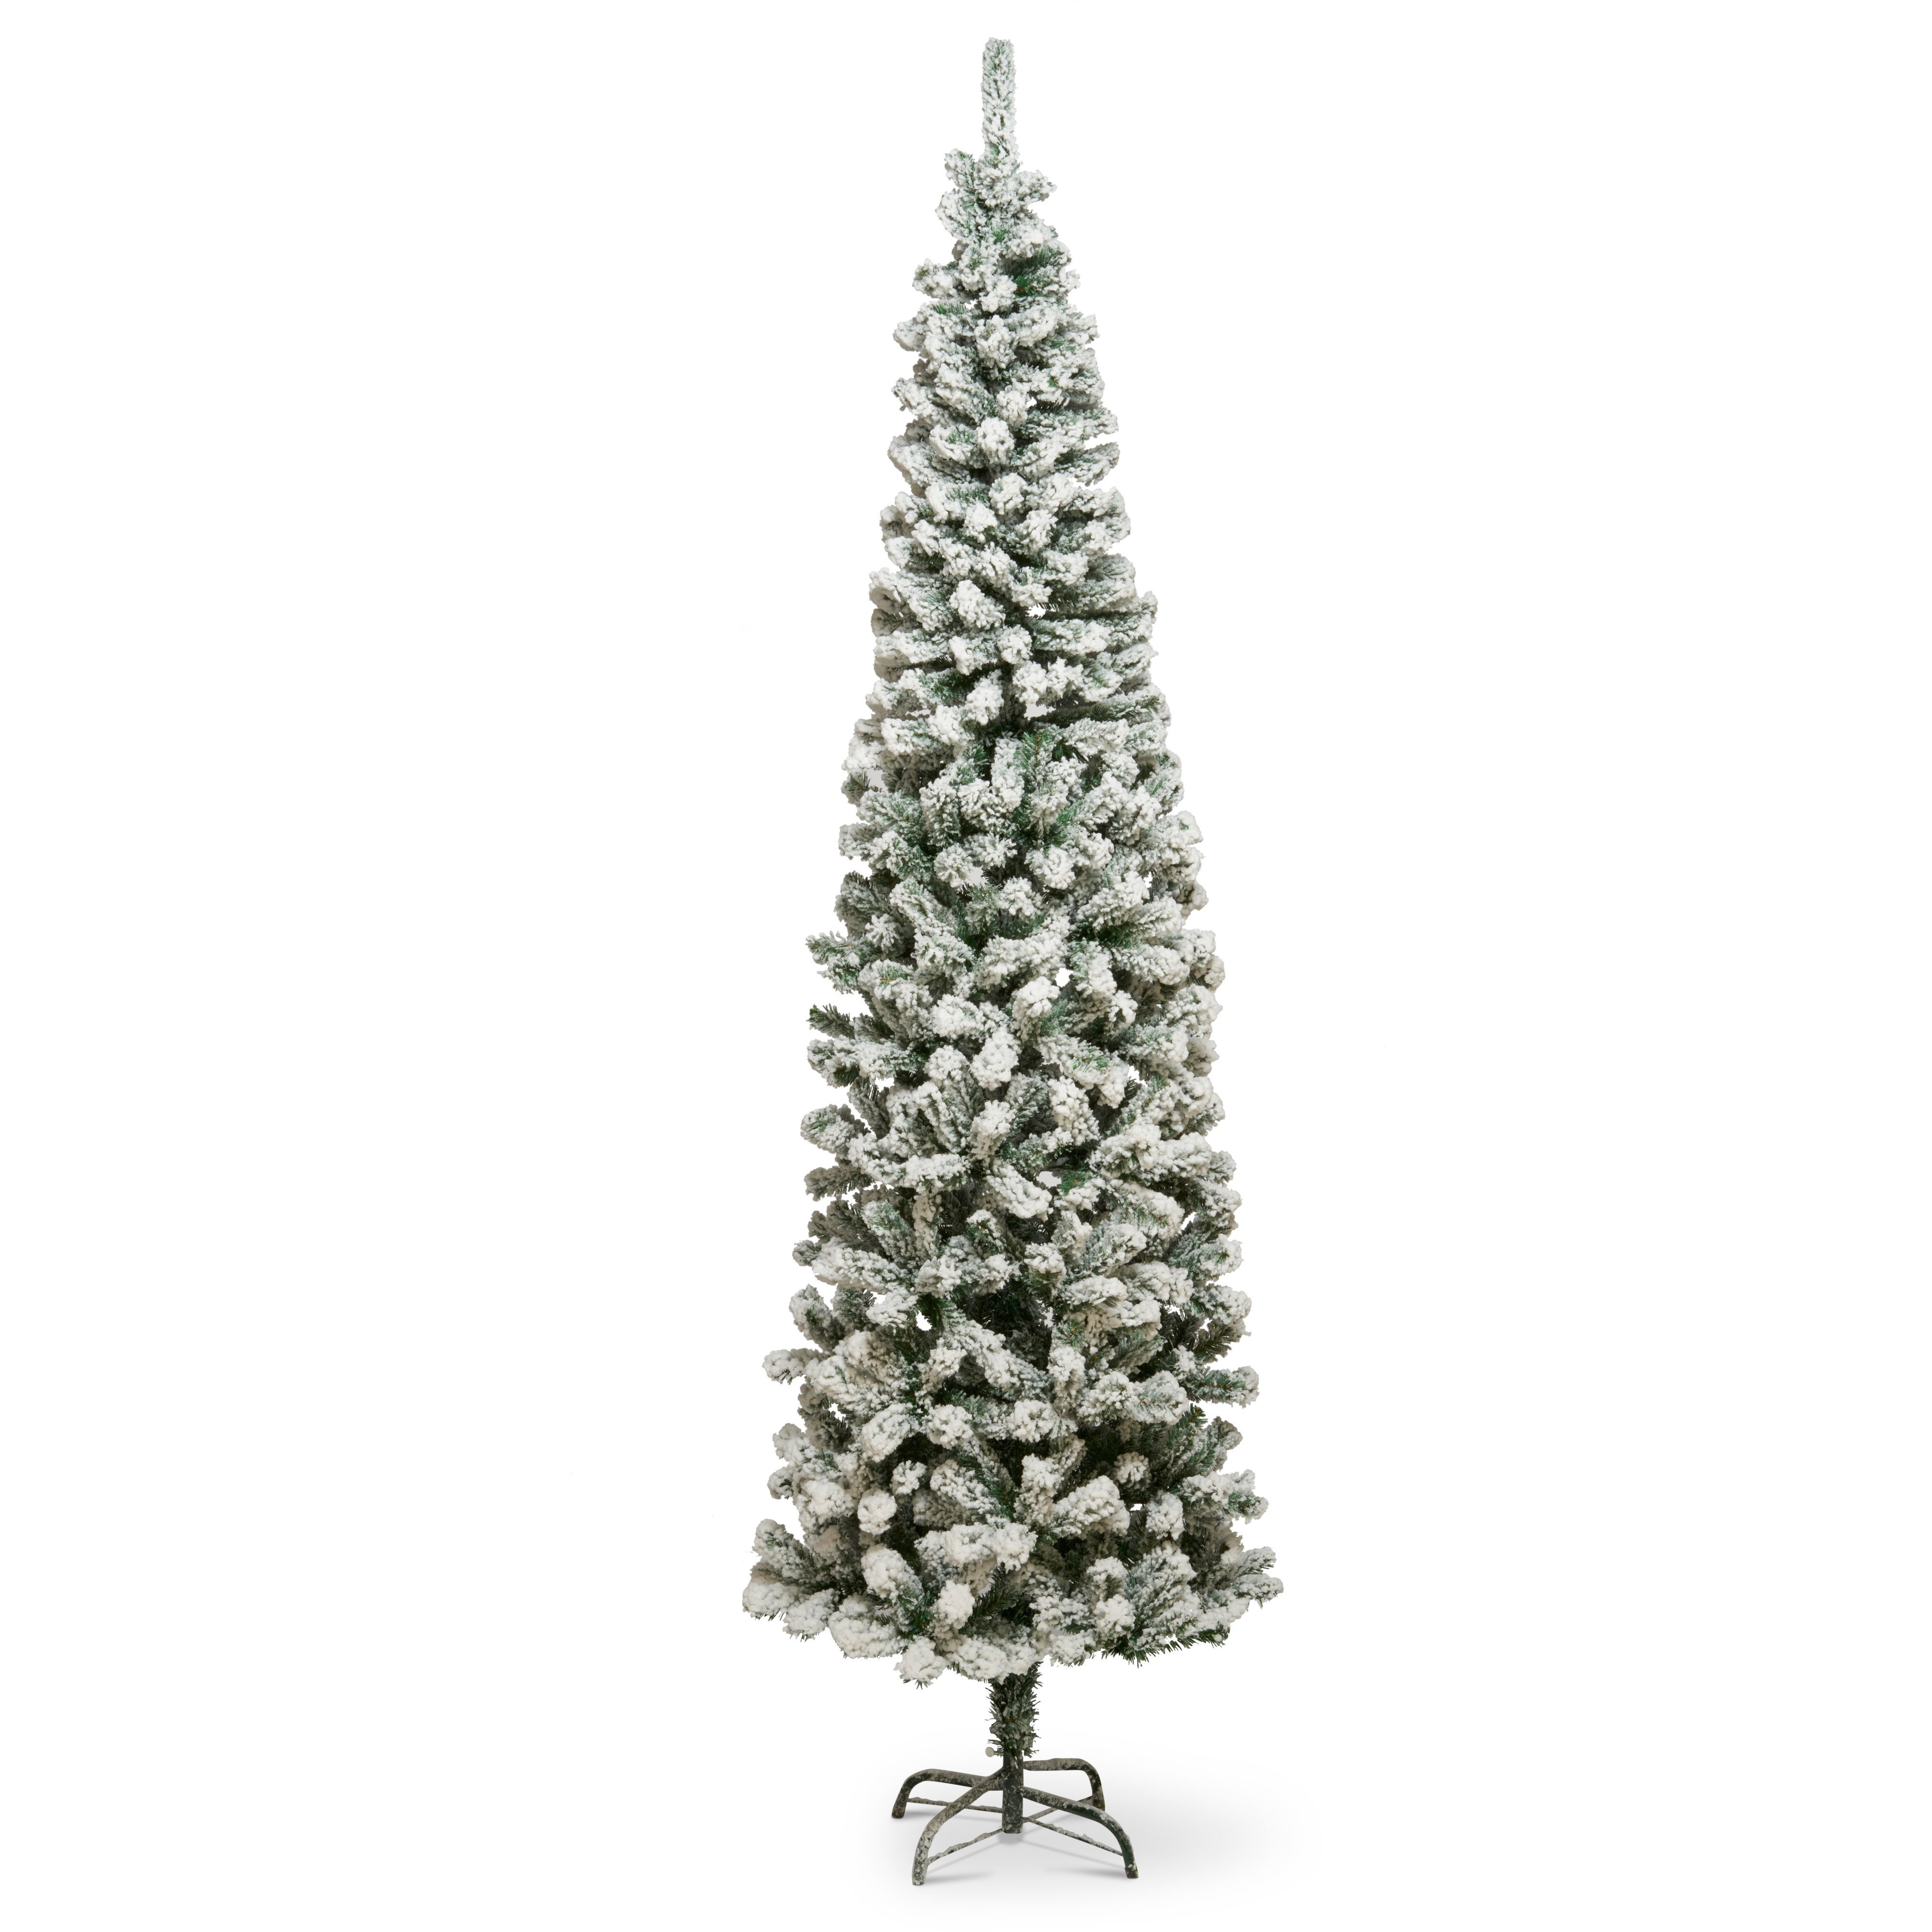 online store 52e2b b3ac8 7ft 6in Flocked spruce pine Christmas tree   Departments   DIY at B&Q